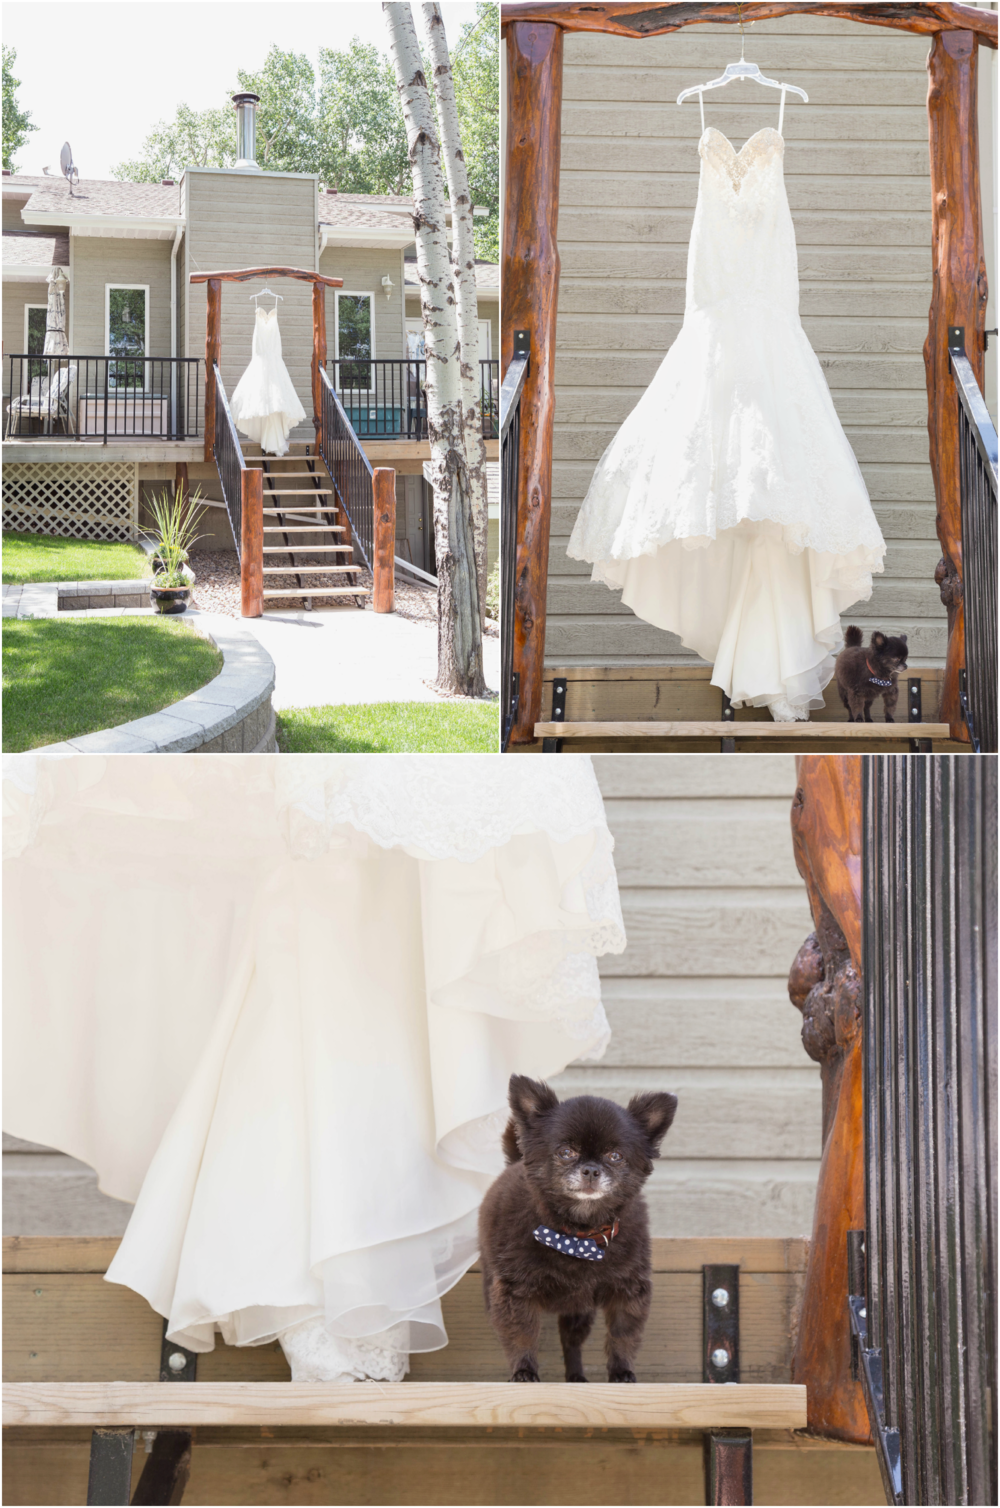 elkwater_wedding_photography_01.png